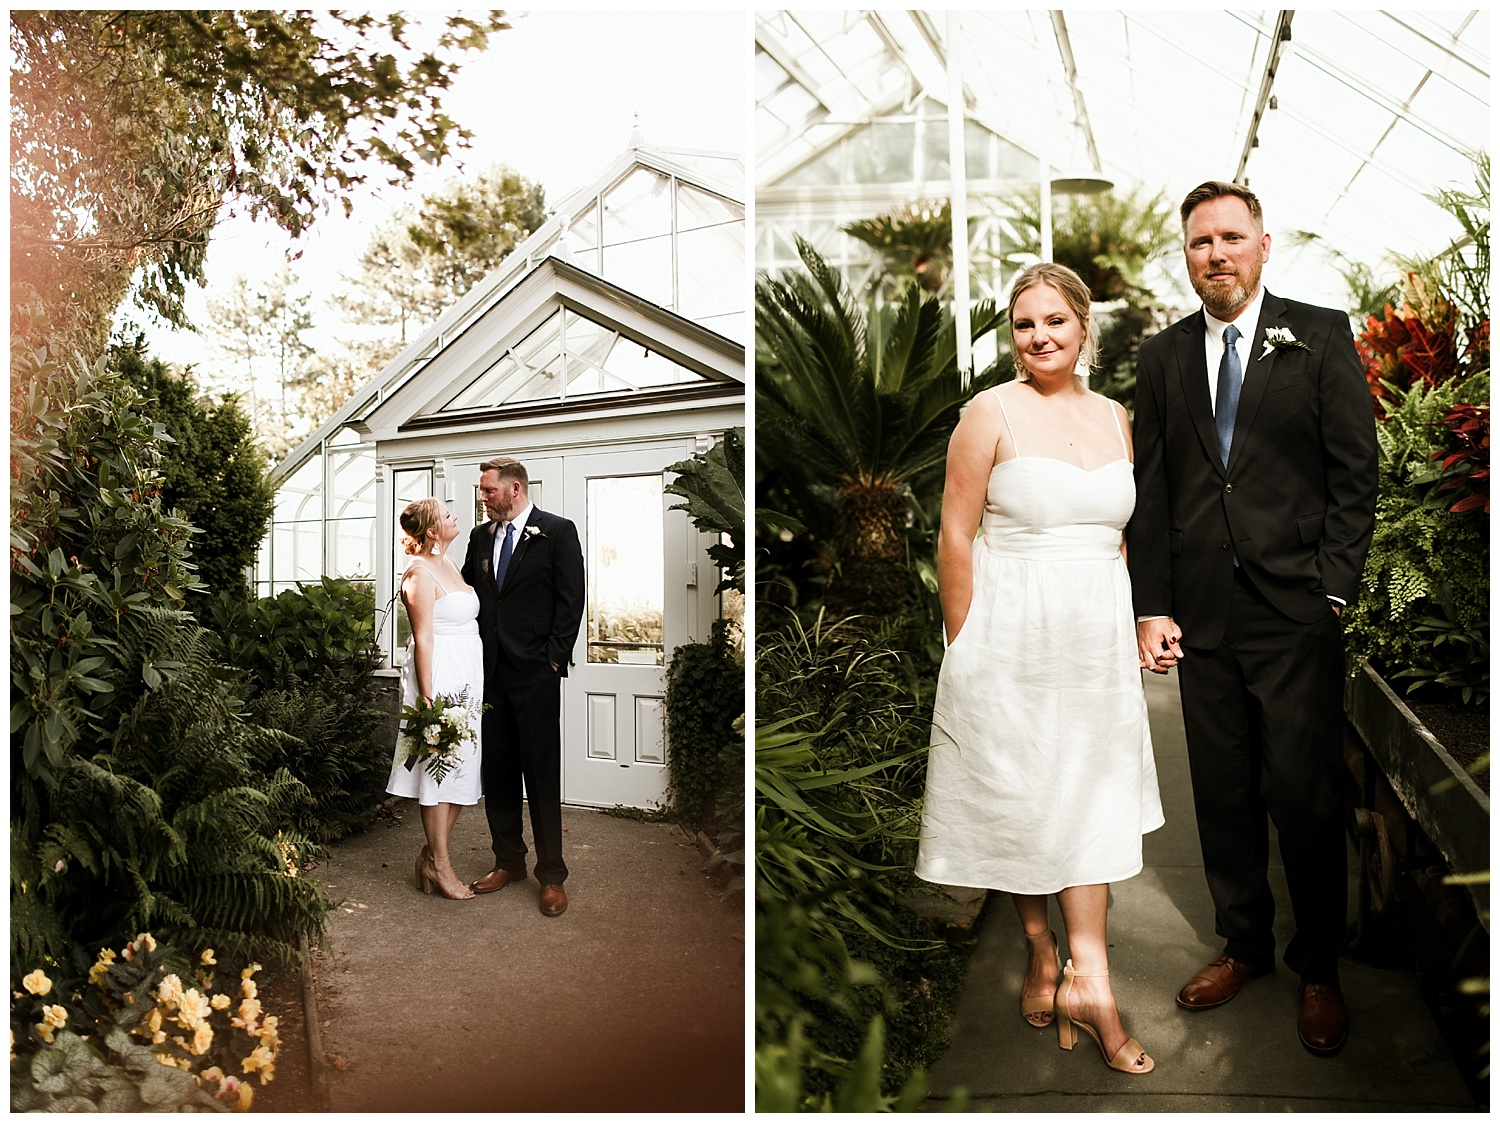 Intimate Volunteer Park Conservatory Elopement_Elizabeth Zuluaga_Agnes and Rob_018.jpg